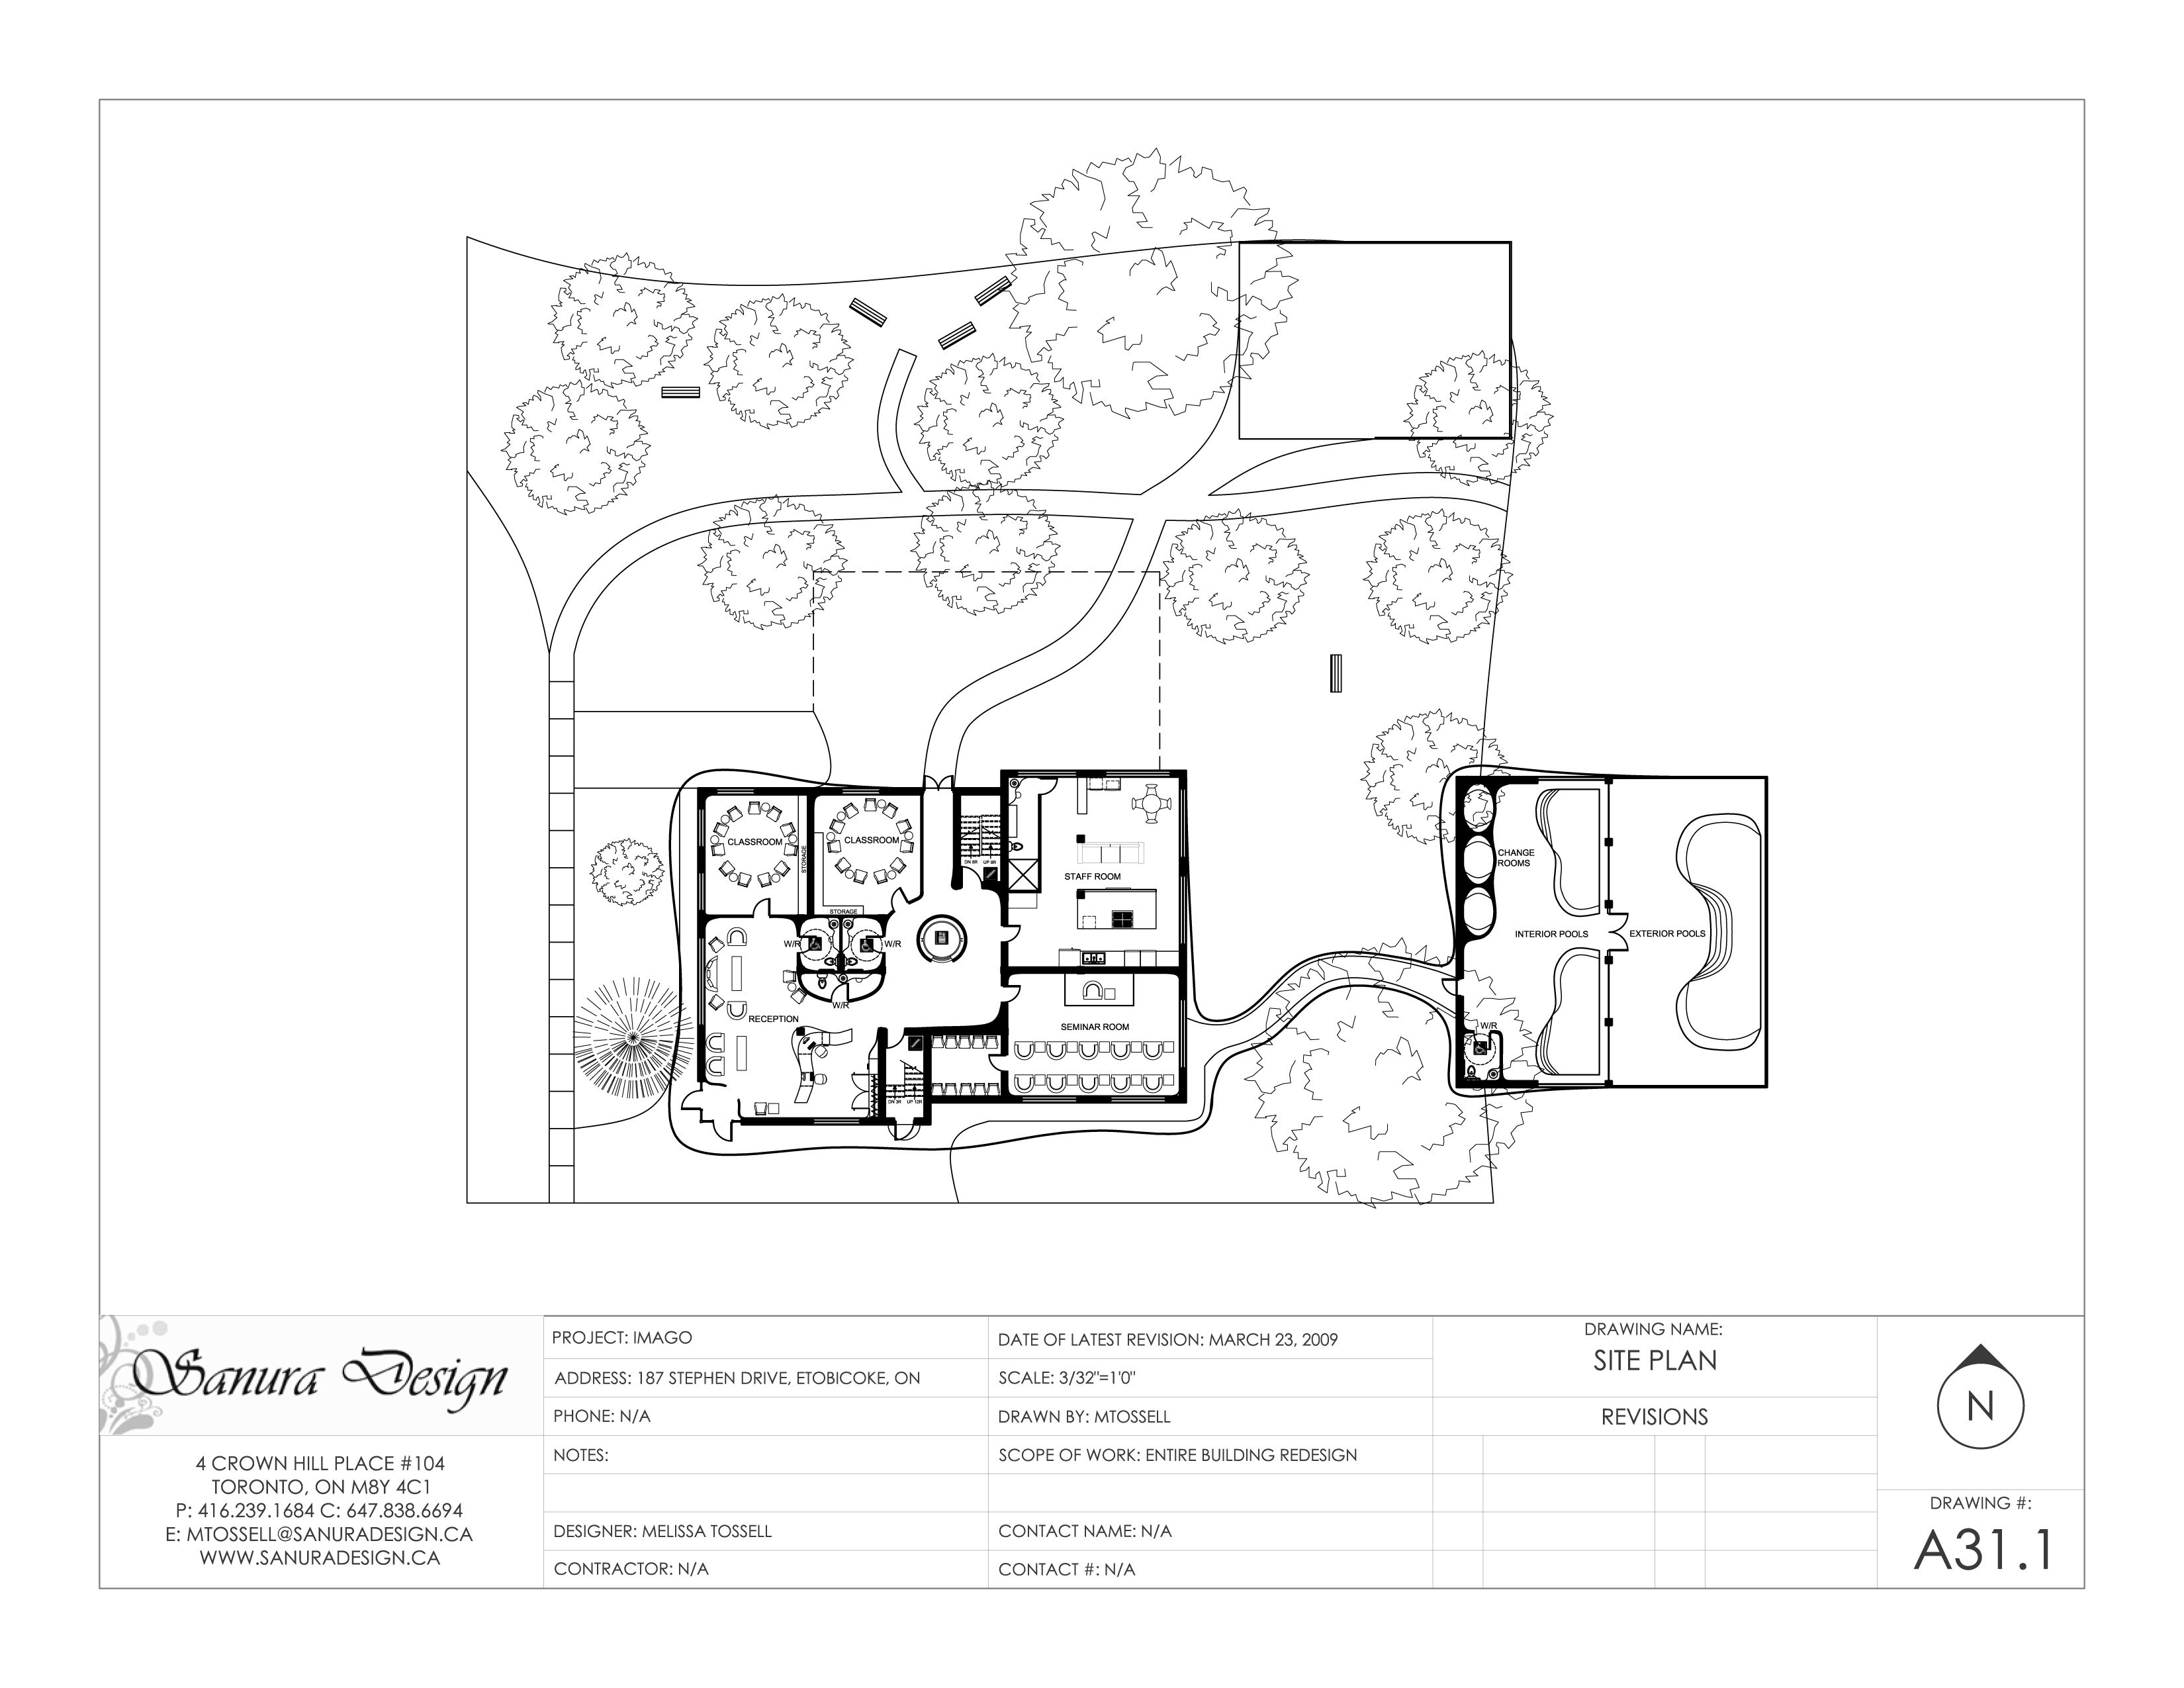 03067b4b2ca39a44bbf32794c59cd542 imago concept site plan featuring proposed floor plans of main Home Electrical Wiring Diagrams at crackthecode.co